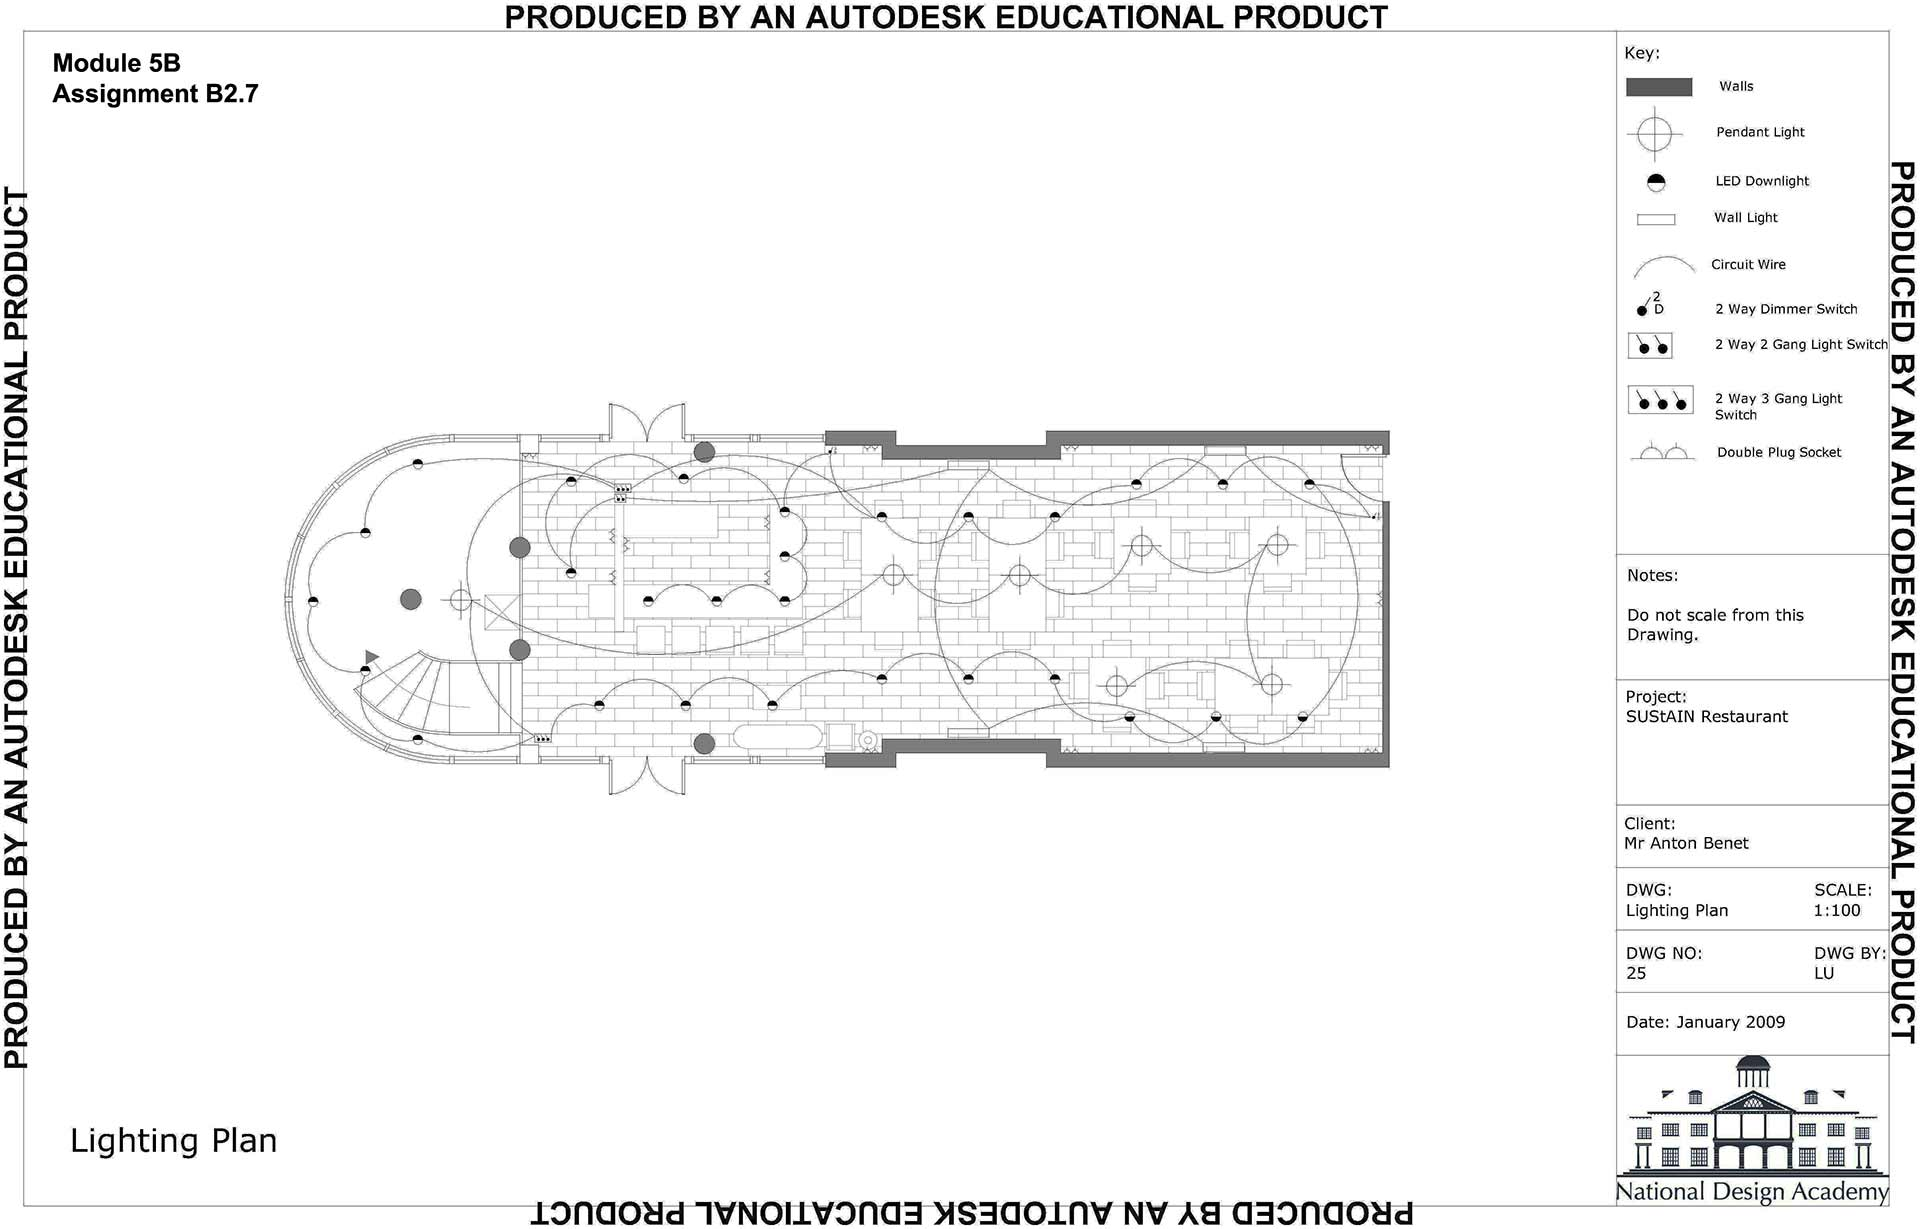 Ba Hons Interior Design Technical Drawing Wiring Diagram For Downlights National Academy 17